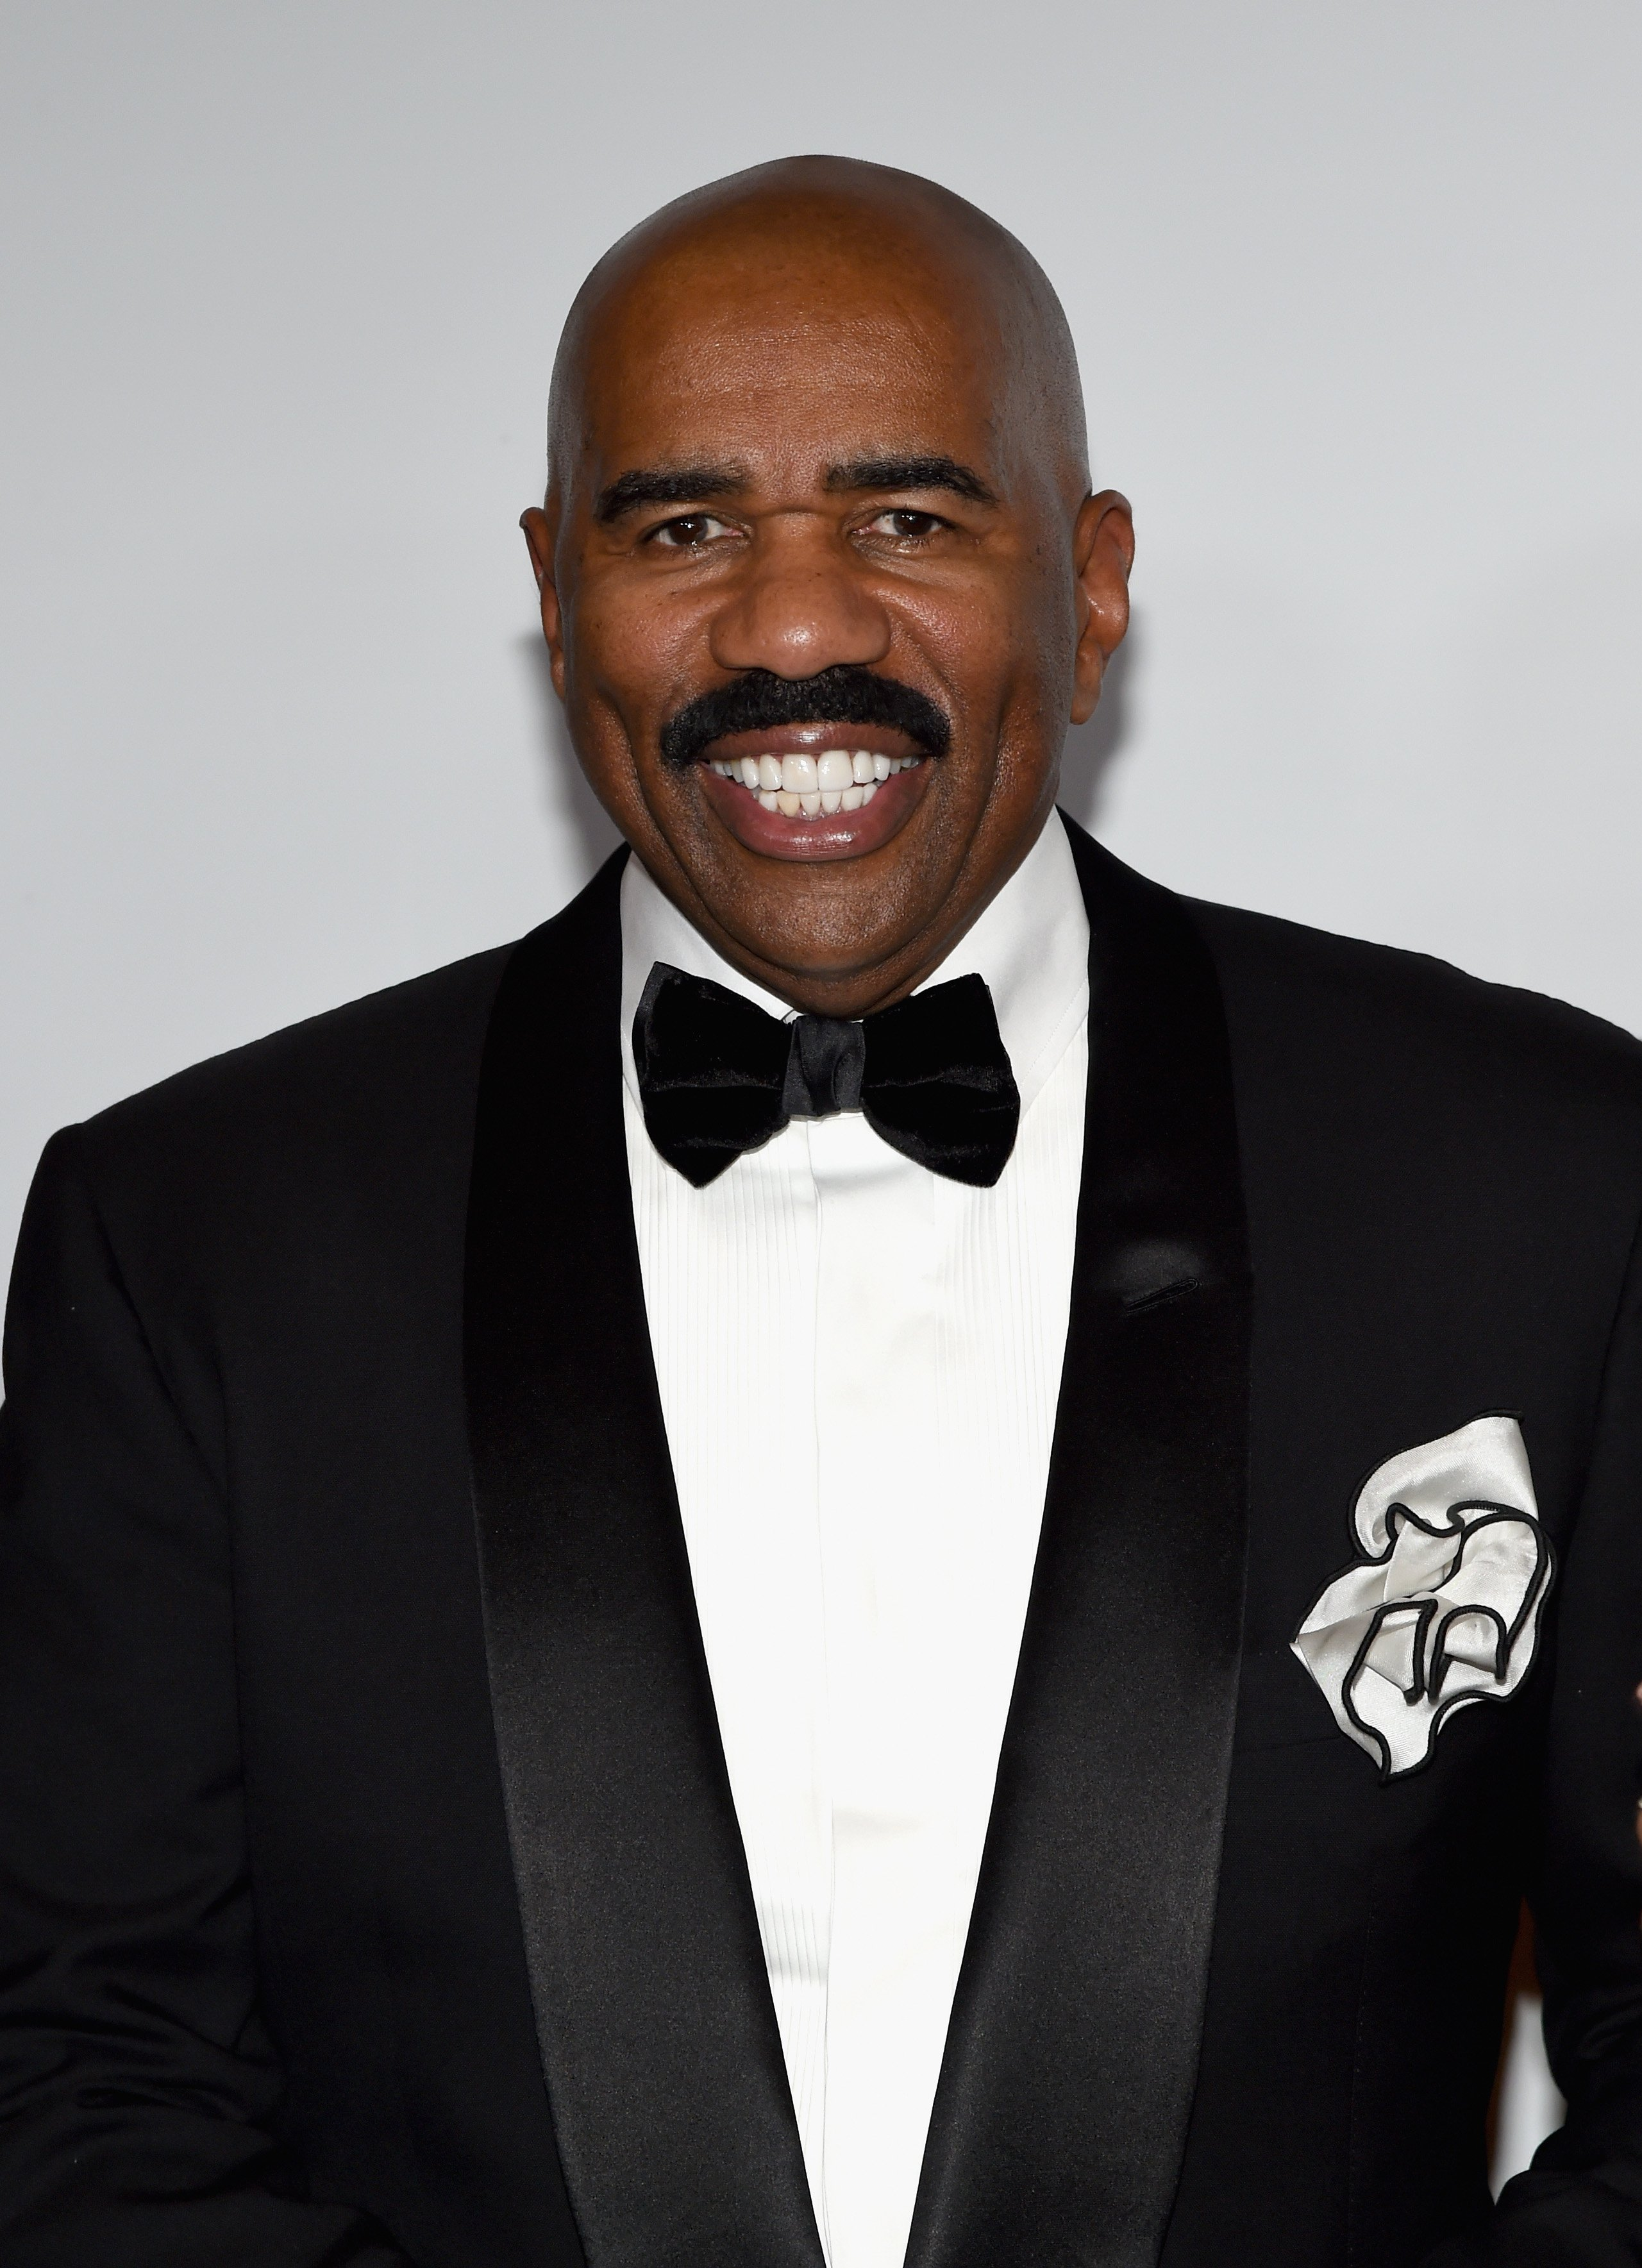 Steve Harvey at the 2015 Miss Universe Pageant at Planet Hollywood Resort & Casino on December 20, 2015 in Las Vegas, Nevada | Photo: Getty Images